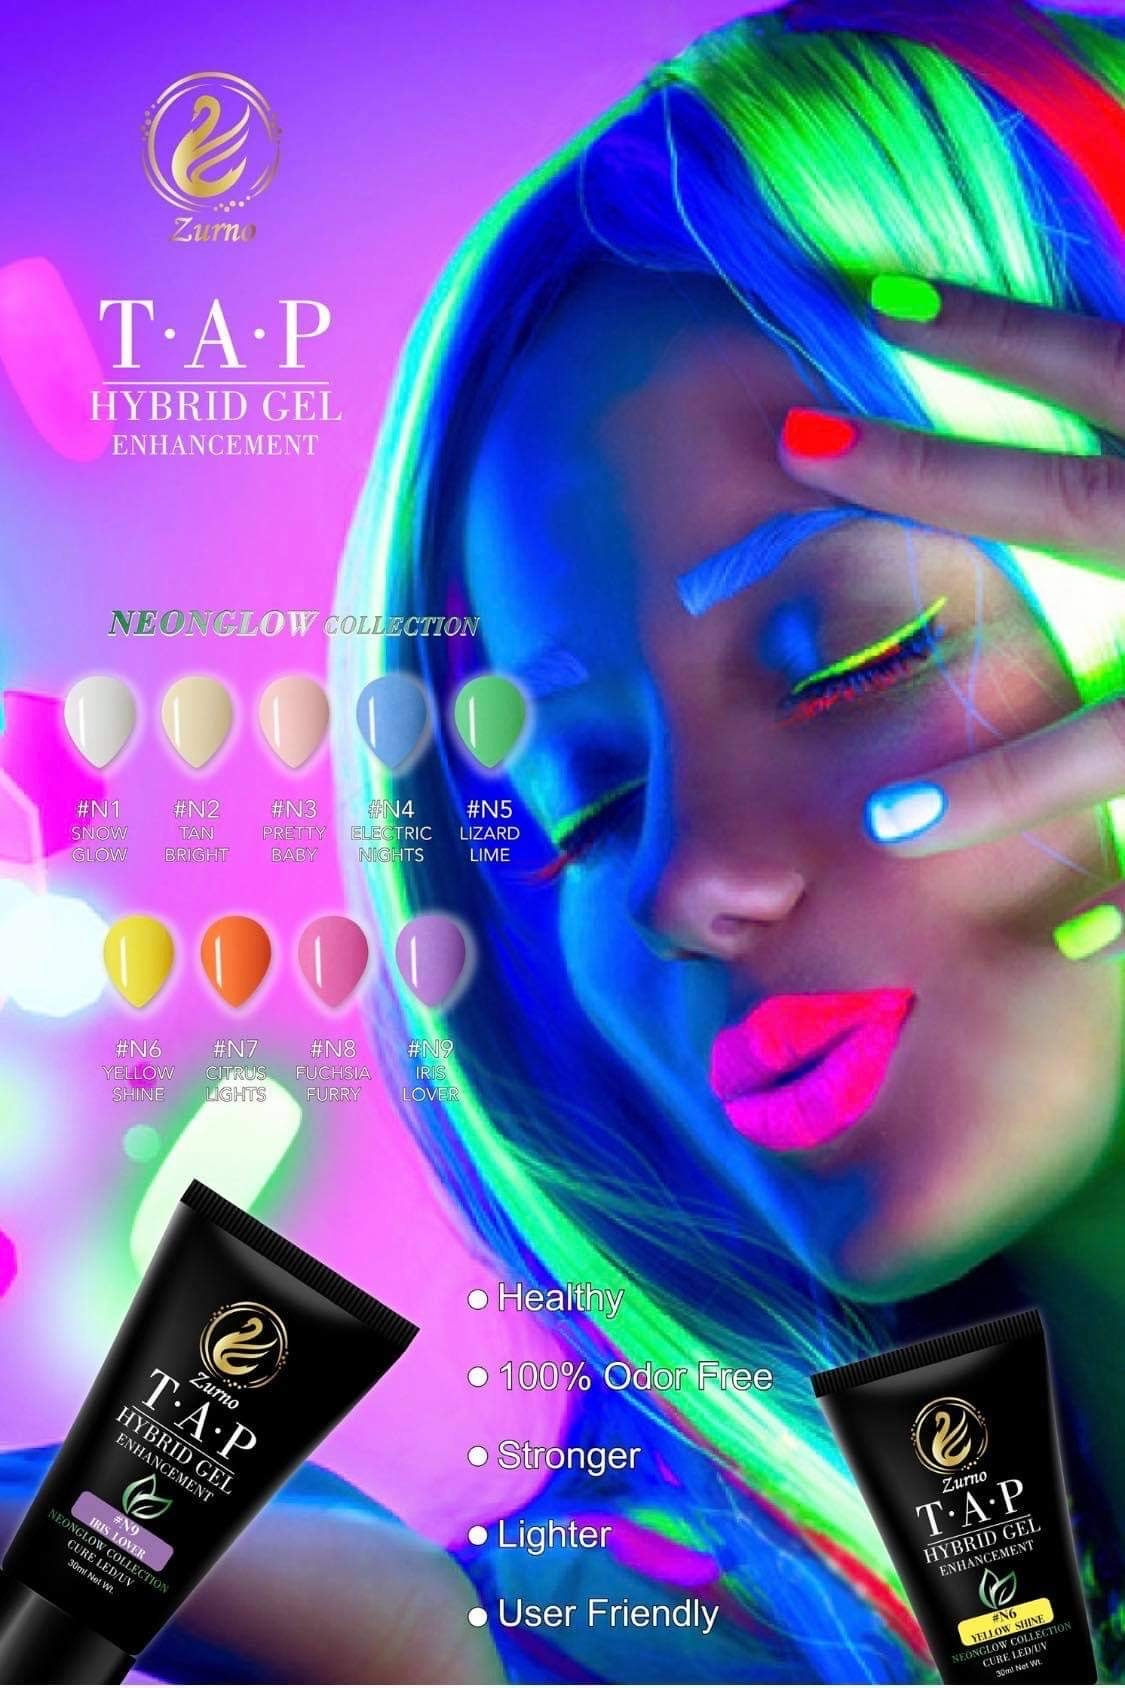 T.A.P- #N6 Yellow Shine- 30ml HYBRID GEL / NEONGLOW Collection